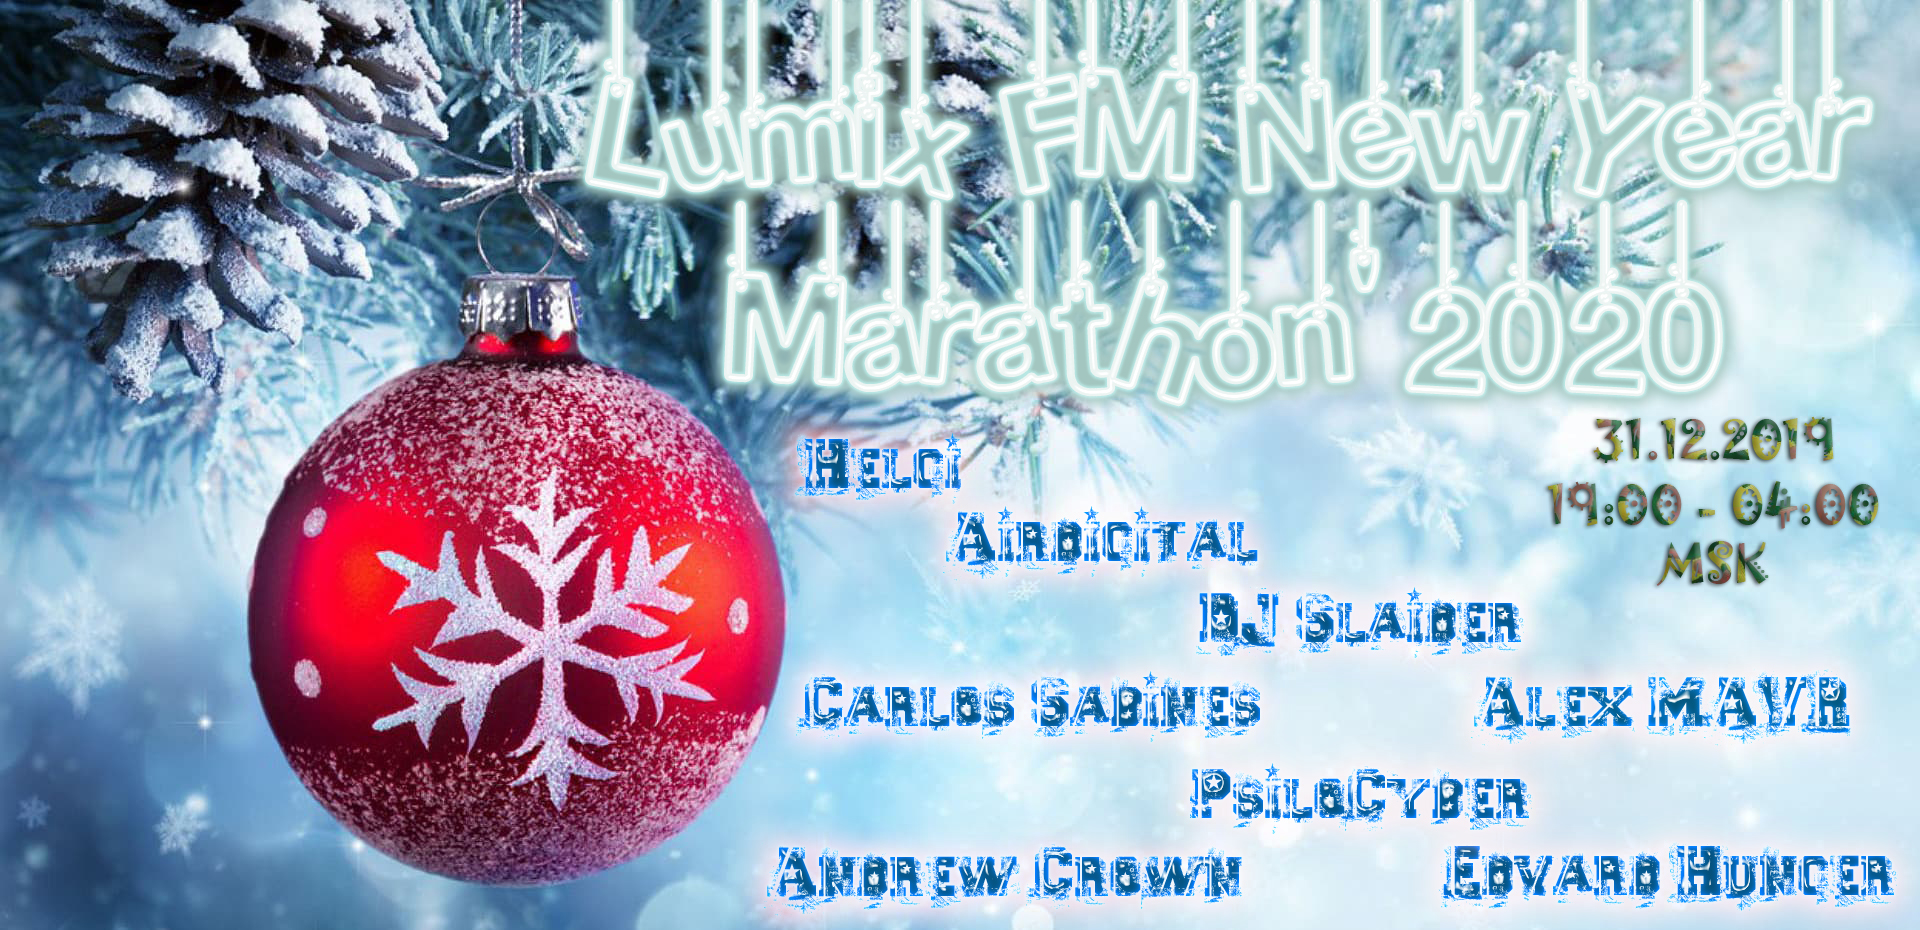 Lumix FM New Year Marathon'2020L